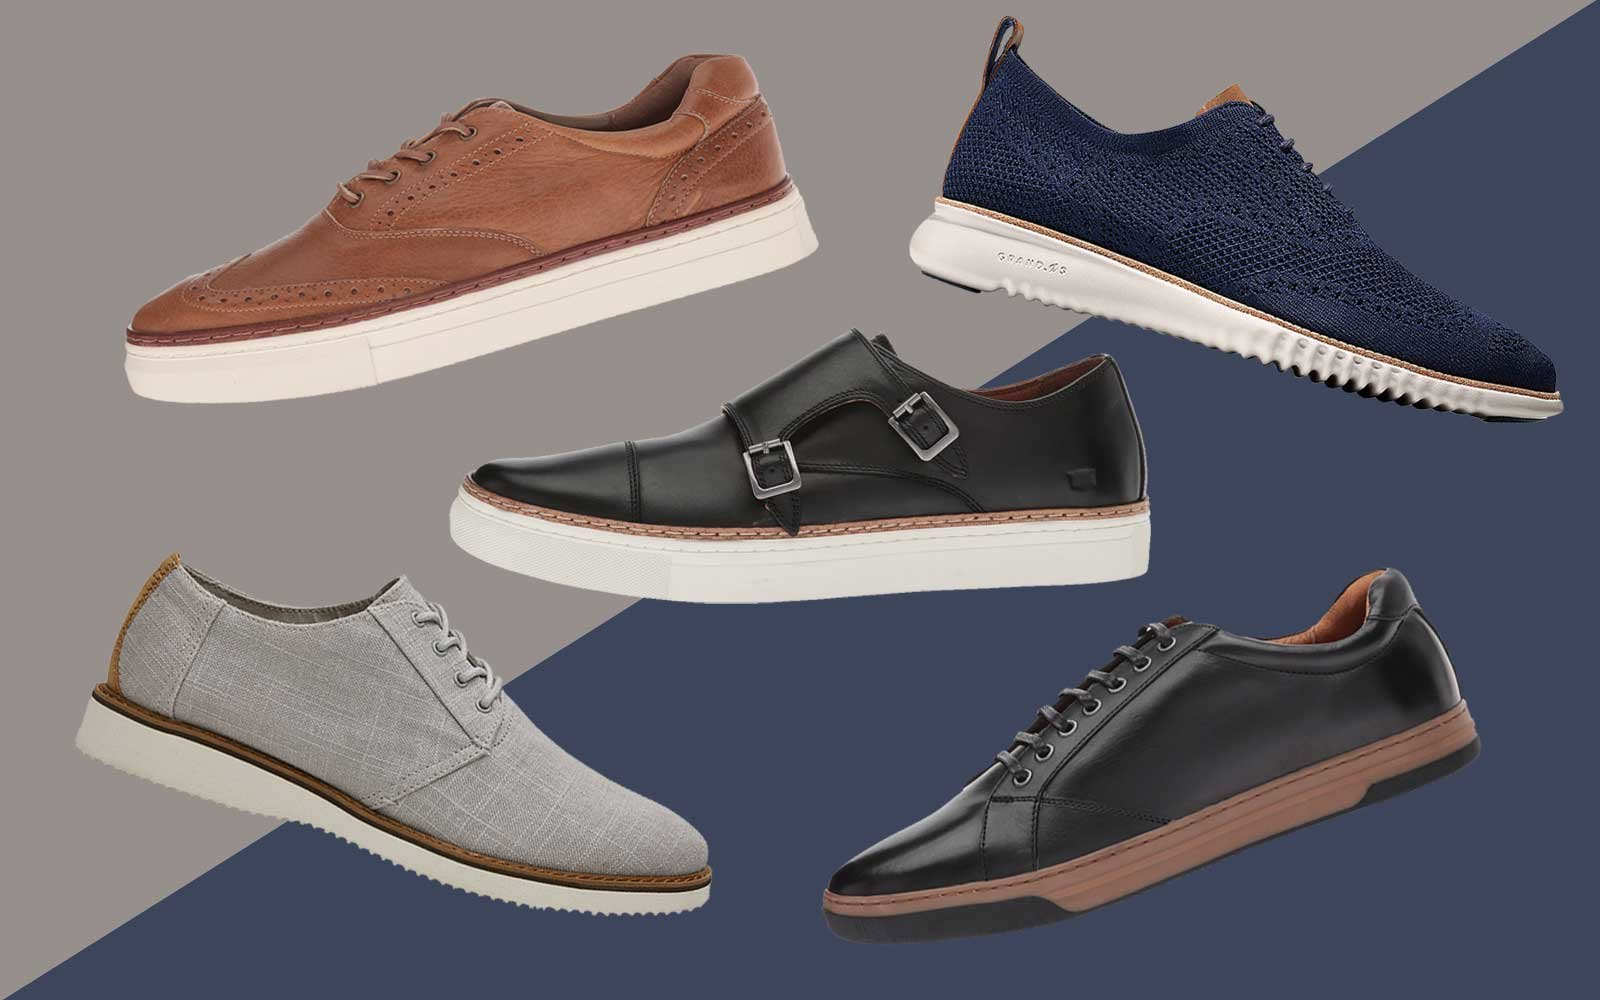 12 Men's Dress Sneakers That Don't Scream 'Tourist'